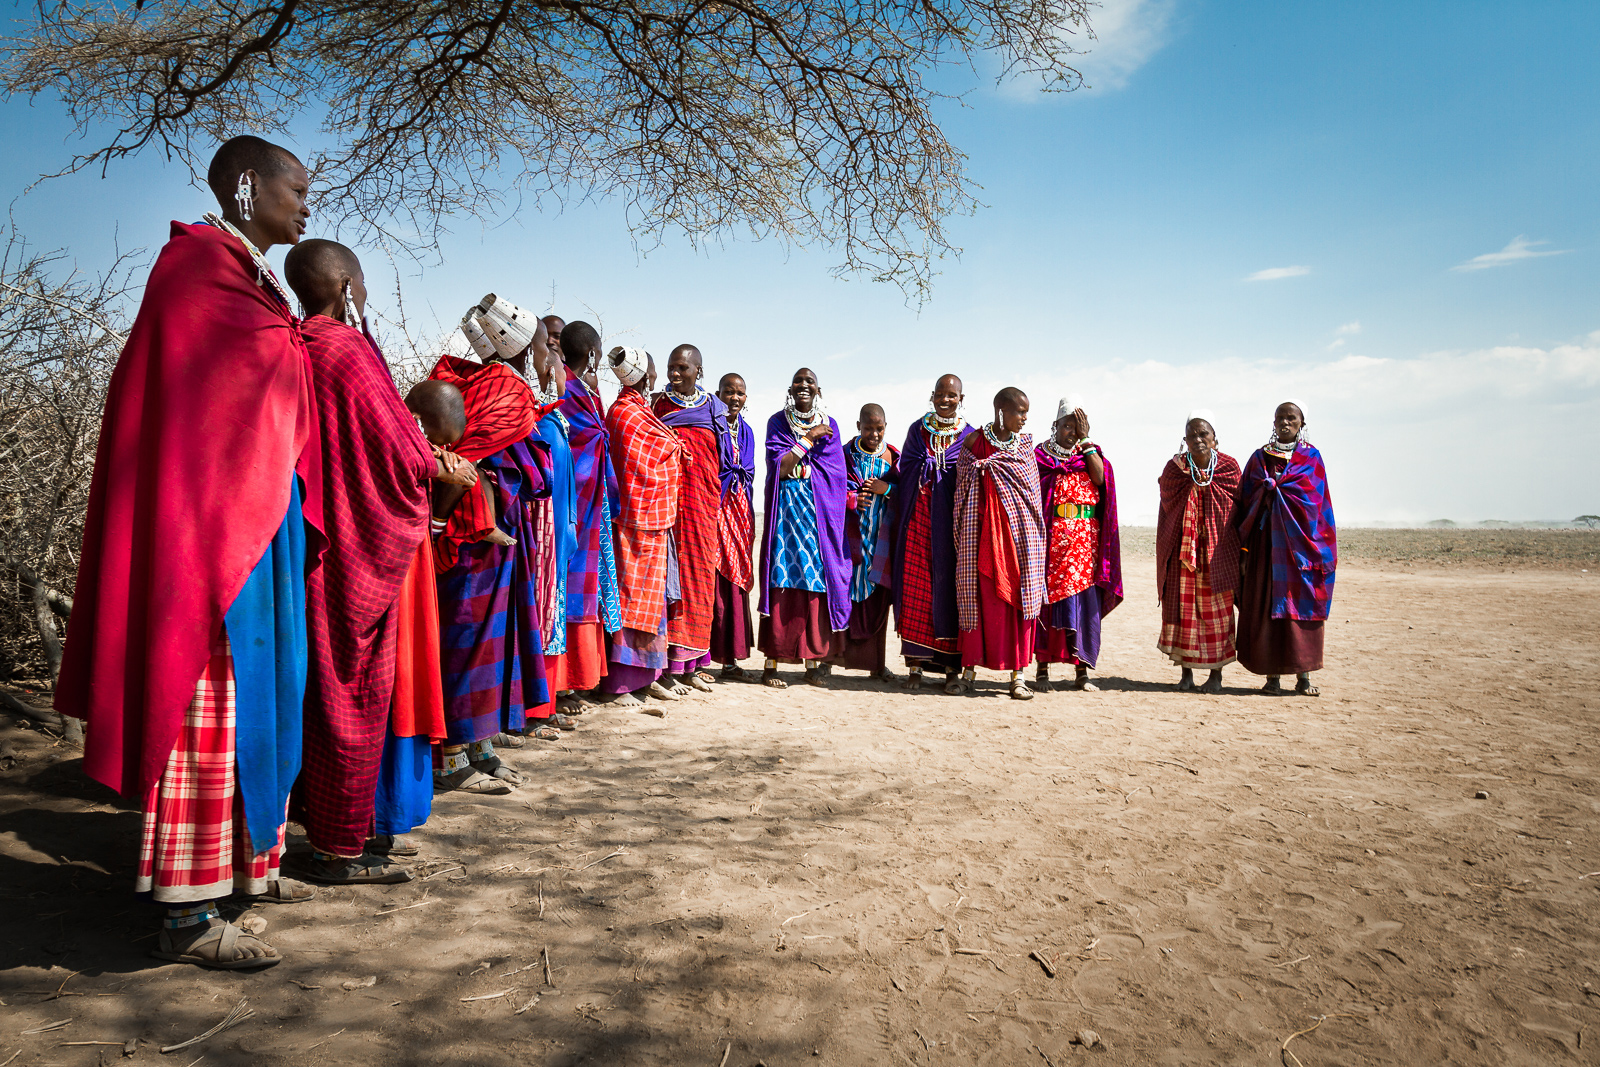 Maasai women at Ngorongoro Conservation Area, Tanzania ©Alessandro Tramonti